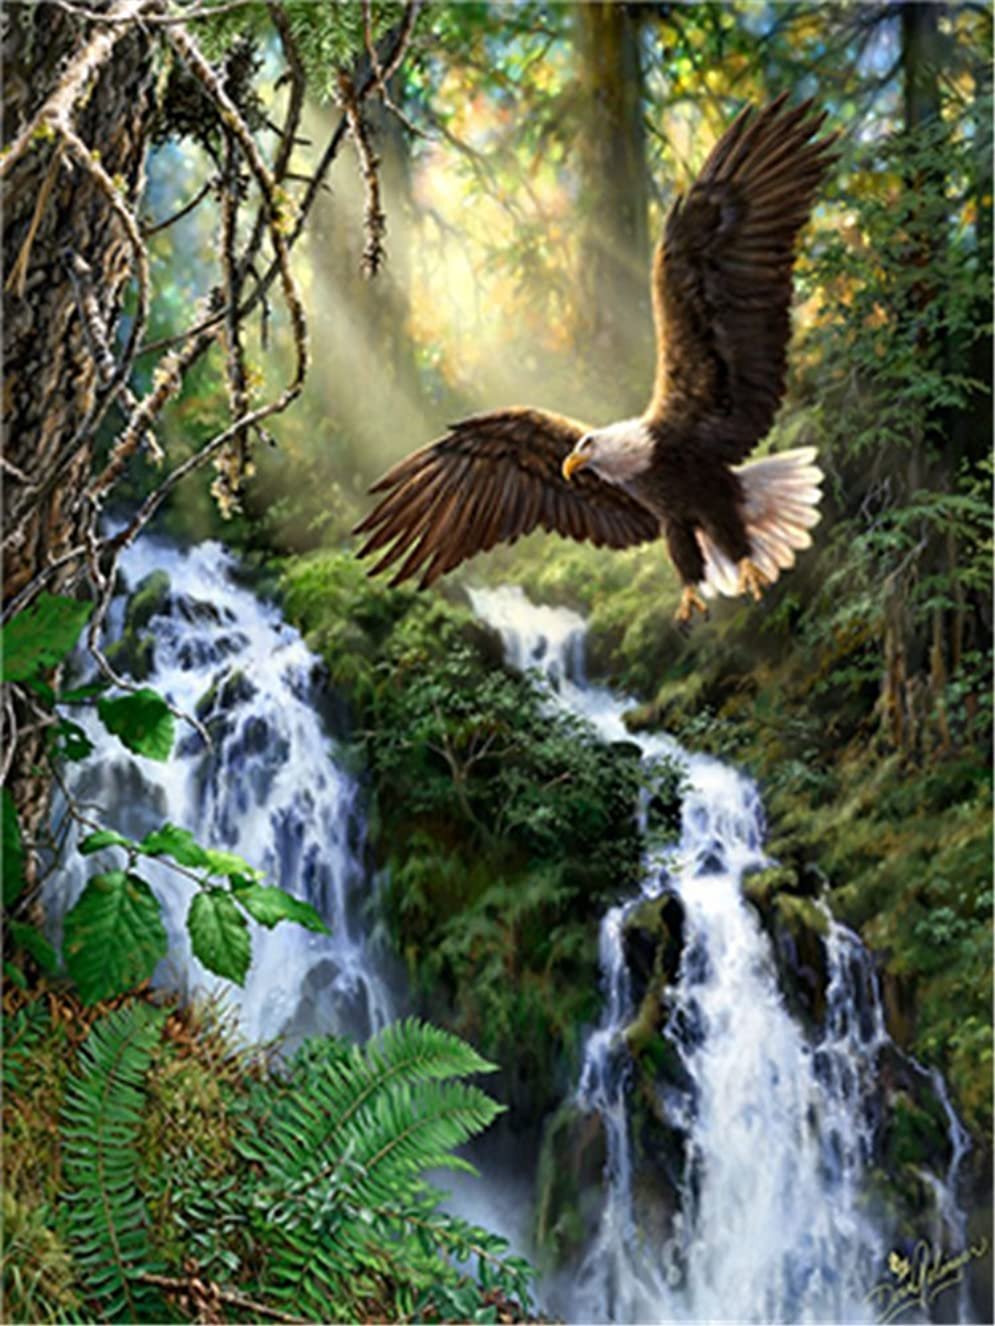 Diy Oil Paint by Number Kit for Adults Beginner 16x20 inch - Flying Eagle in Forest, Drawing with Brushes Christmas Decor Decorations Gifts (Frame) osqnqeytnx1938